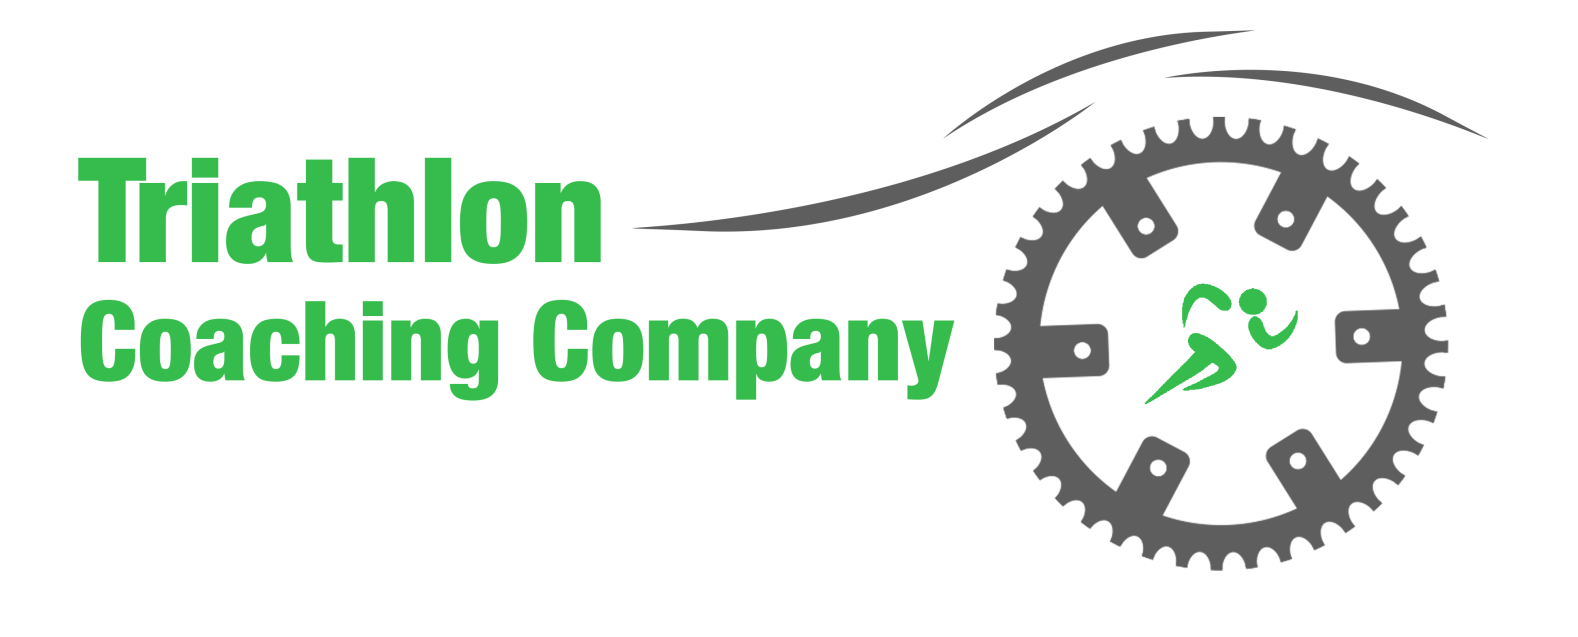 The Triathlon Coaching Company Logo